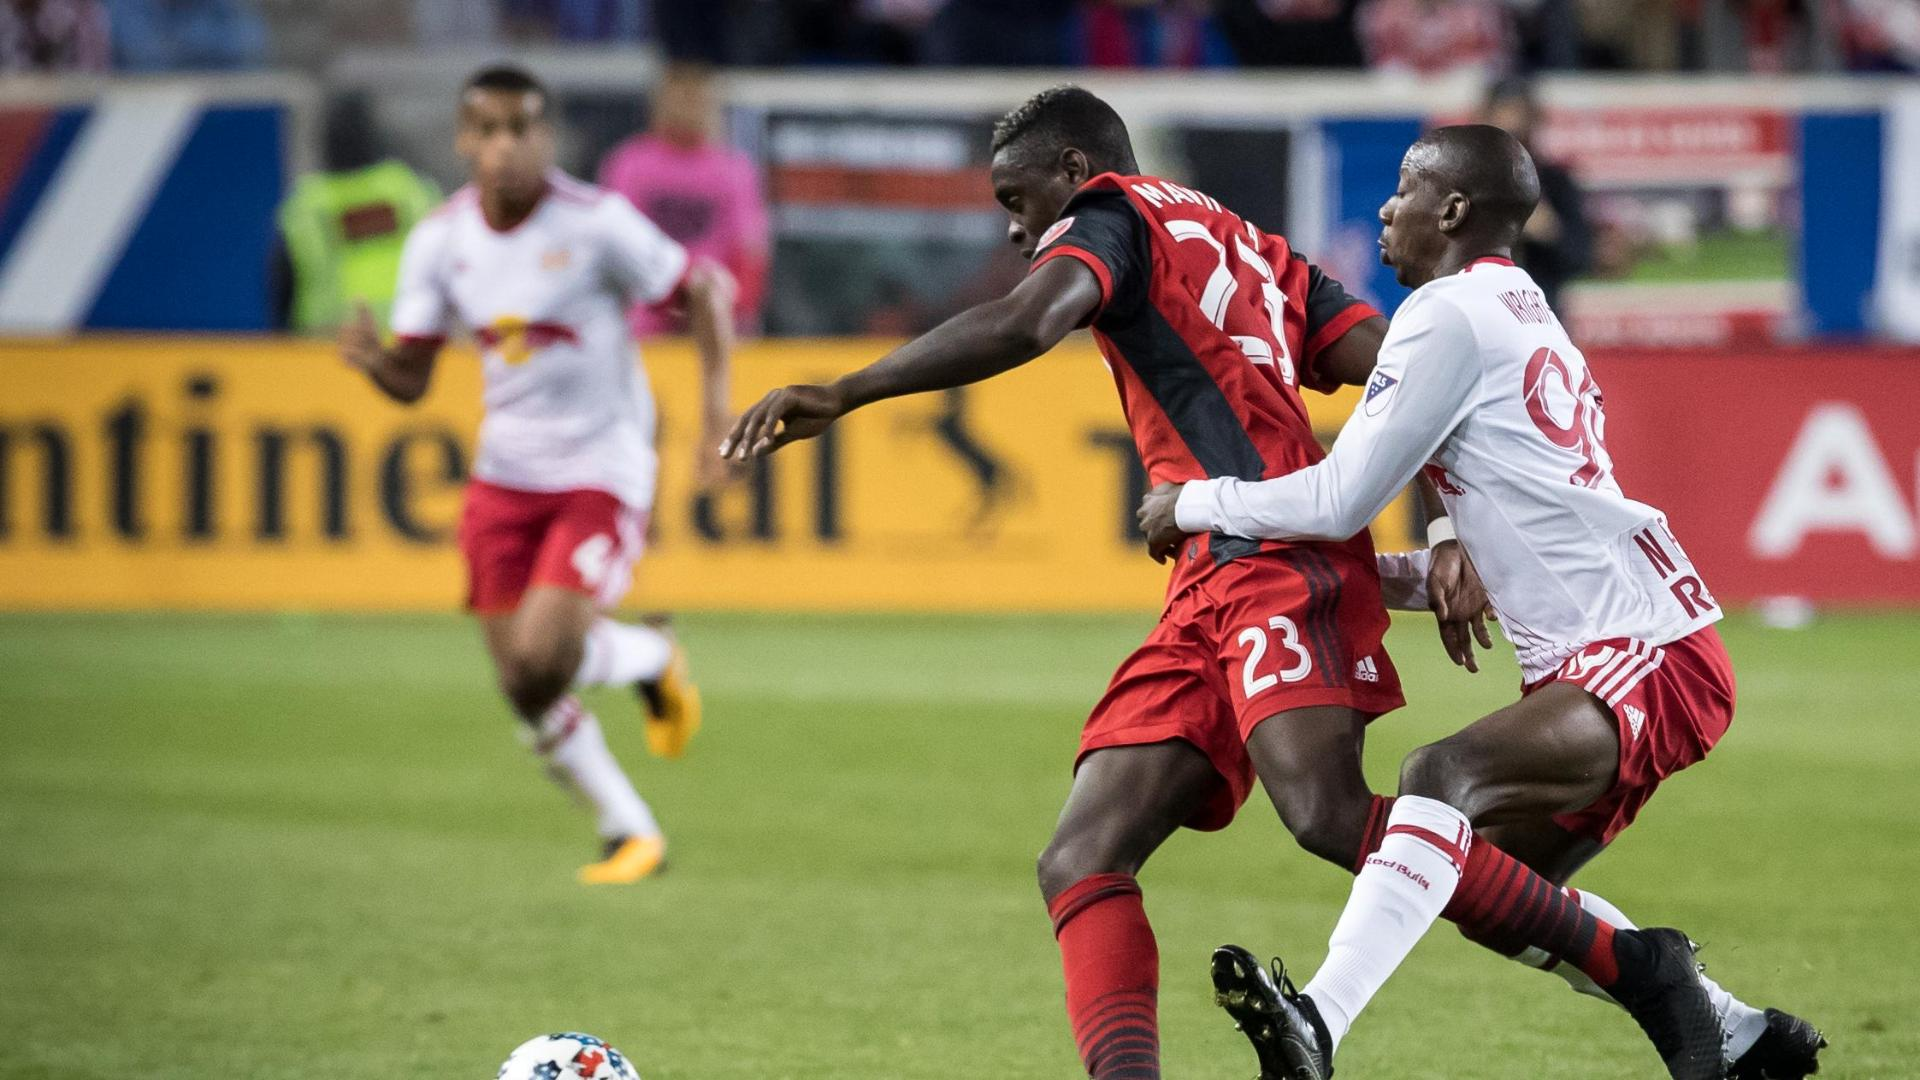 BWP: We didn't deserve to lose - Via Red Bulls